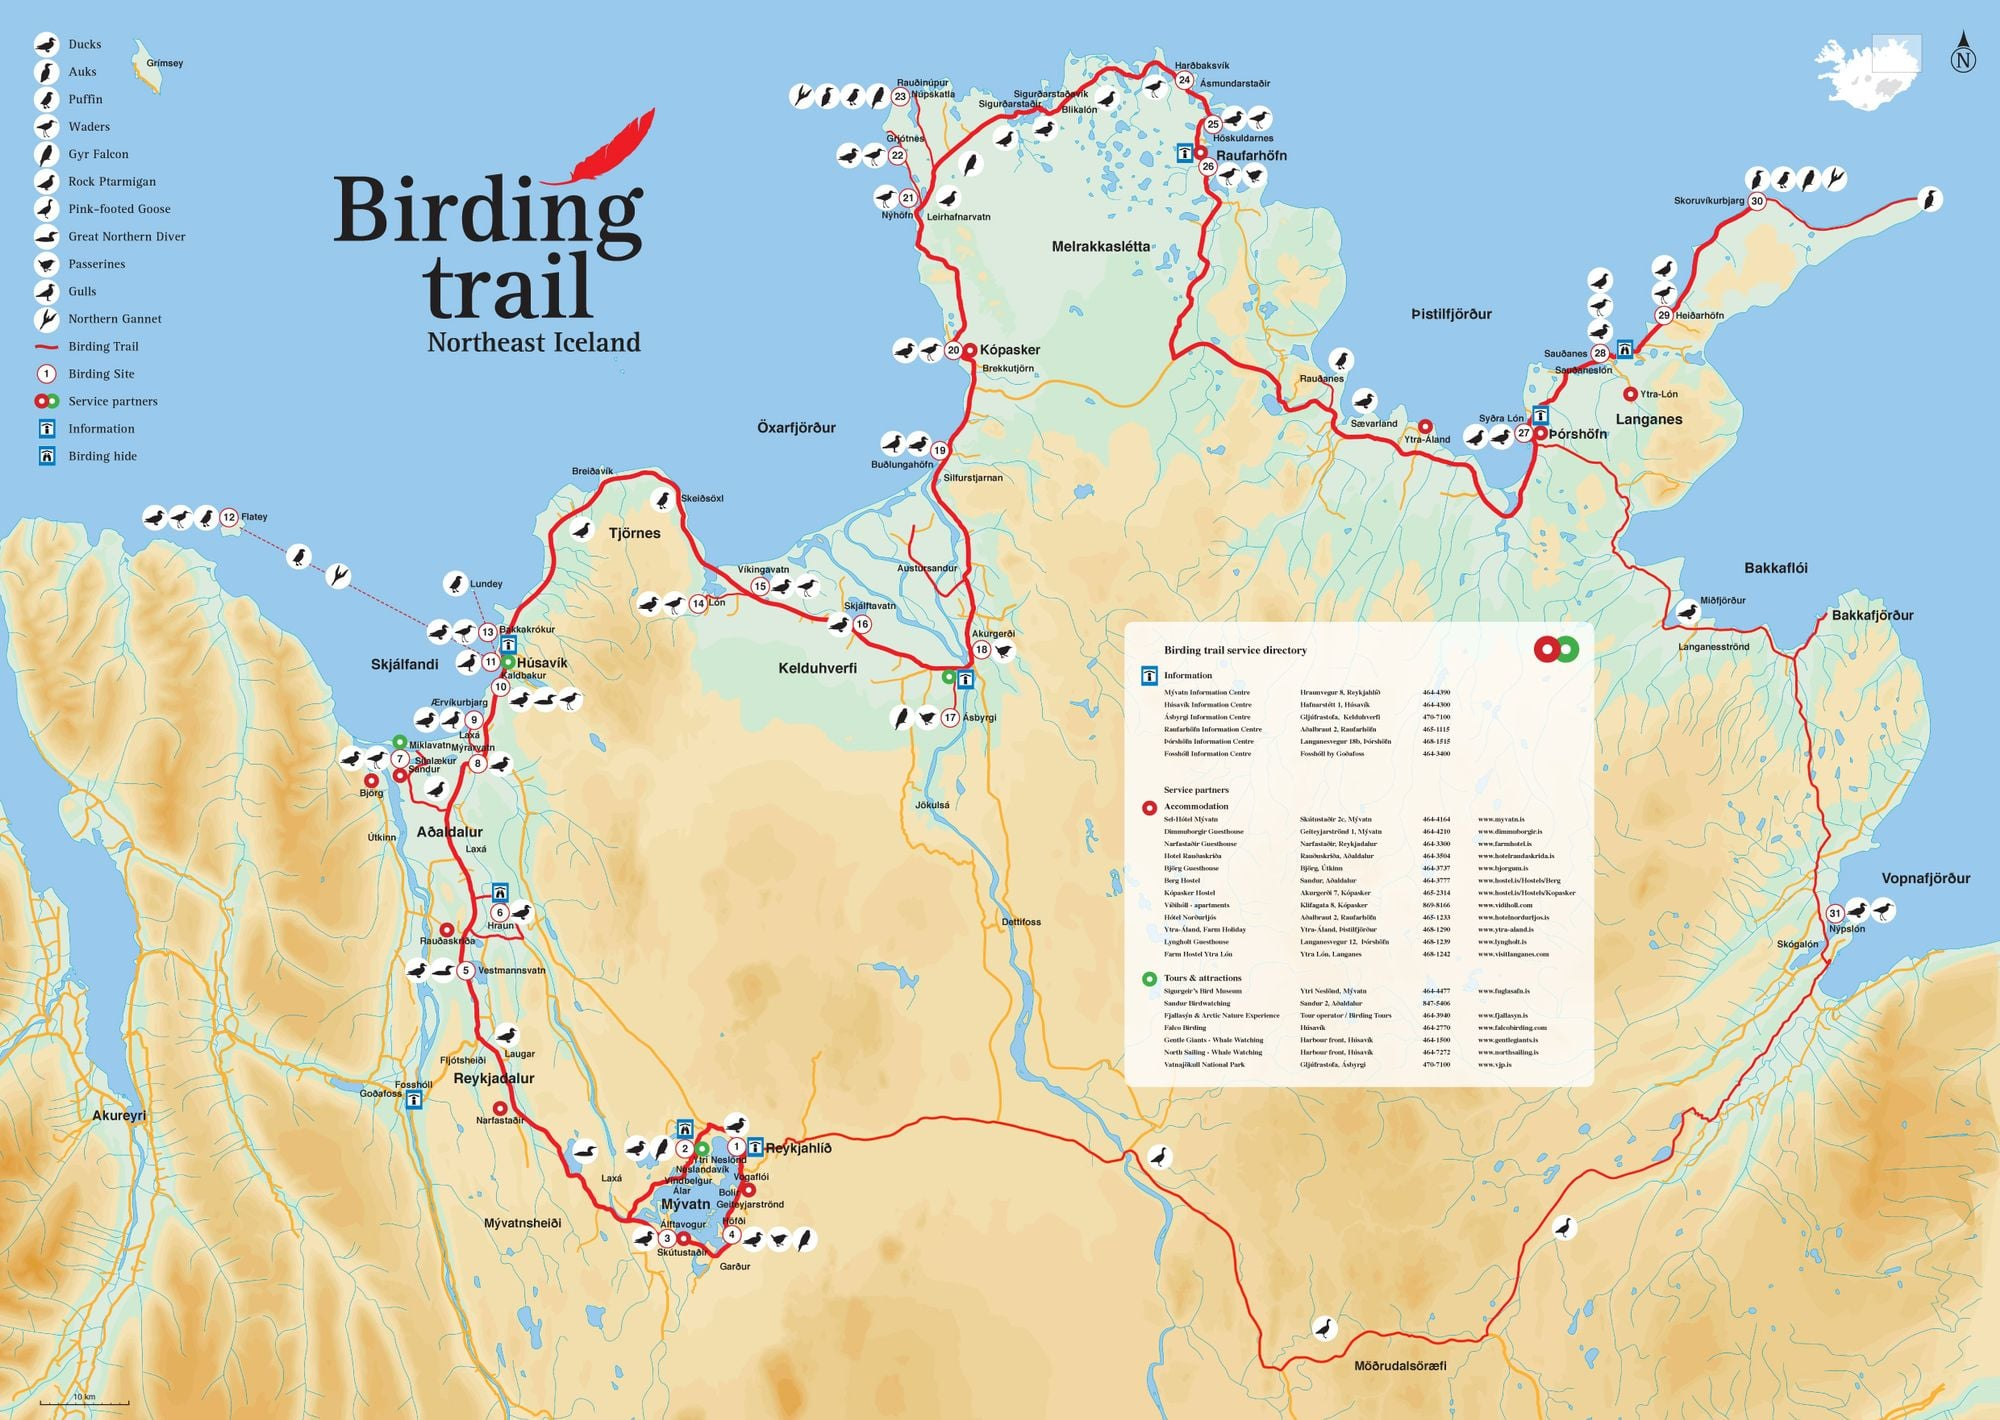 Birding Iceland - Interactive Birding Iceland map including Barrow's on honduras road map pdf, switzerland road map pdf, new zealand road map pdf, mexico road map pdf, france road map pdf, zimbabwe road map pdf, ecuador road map pdf, costa rica road map pdf,